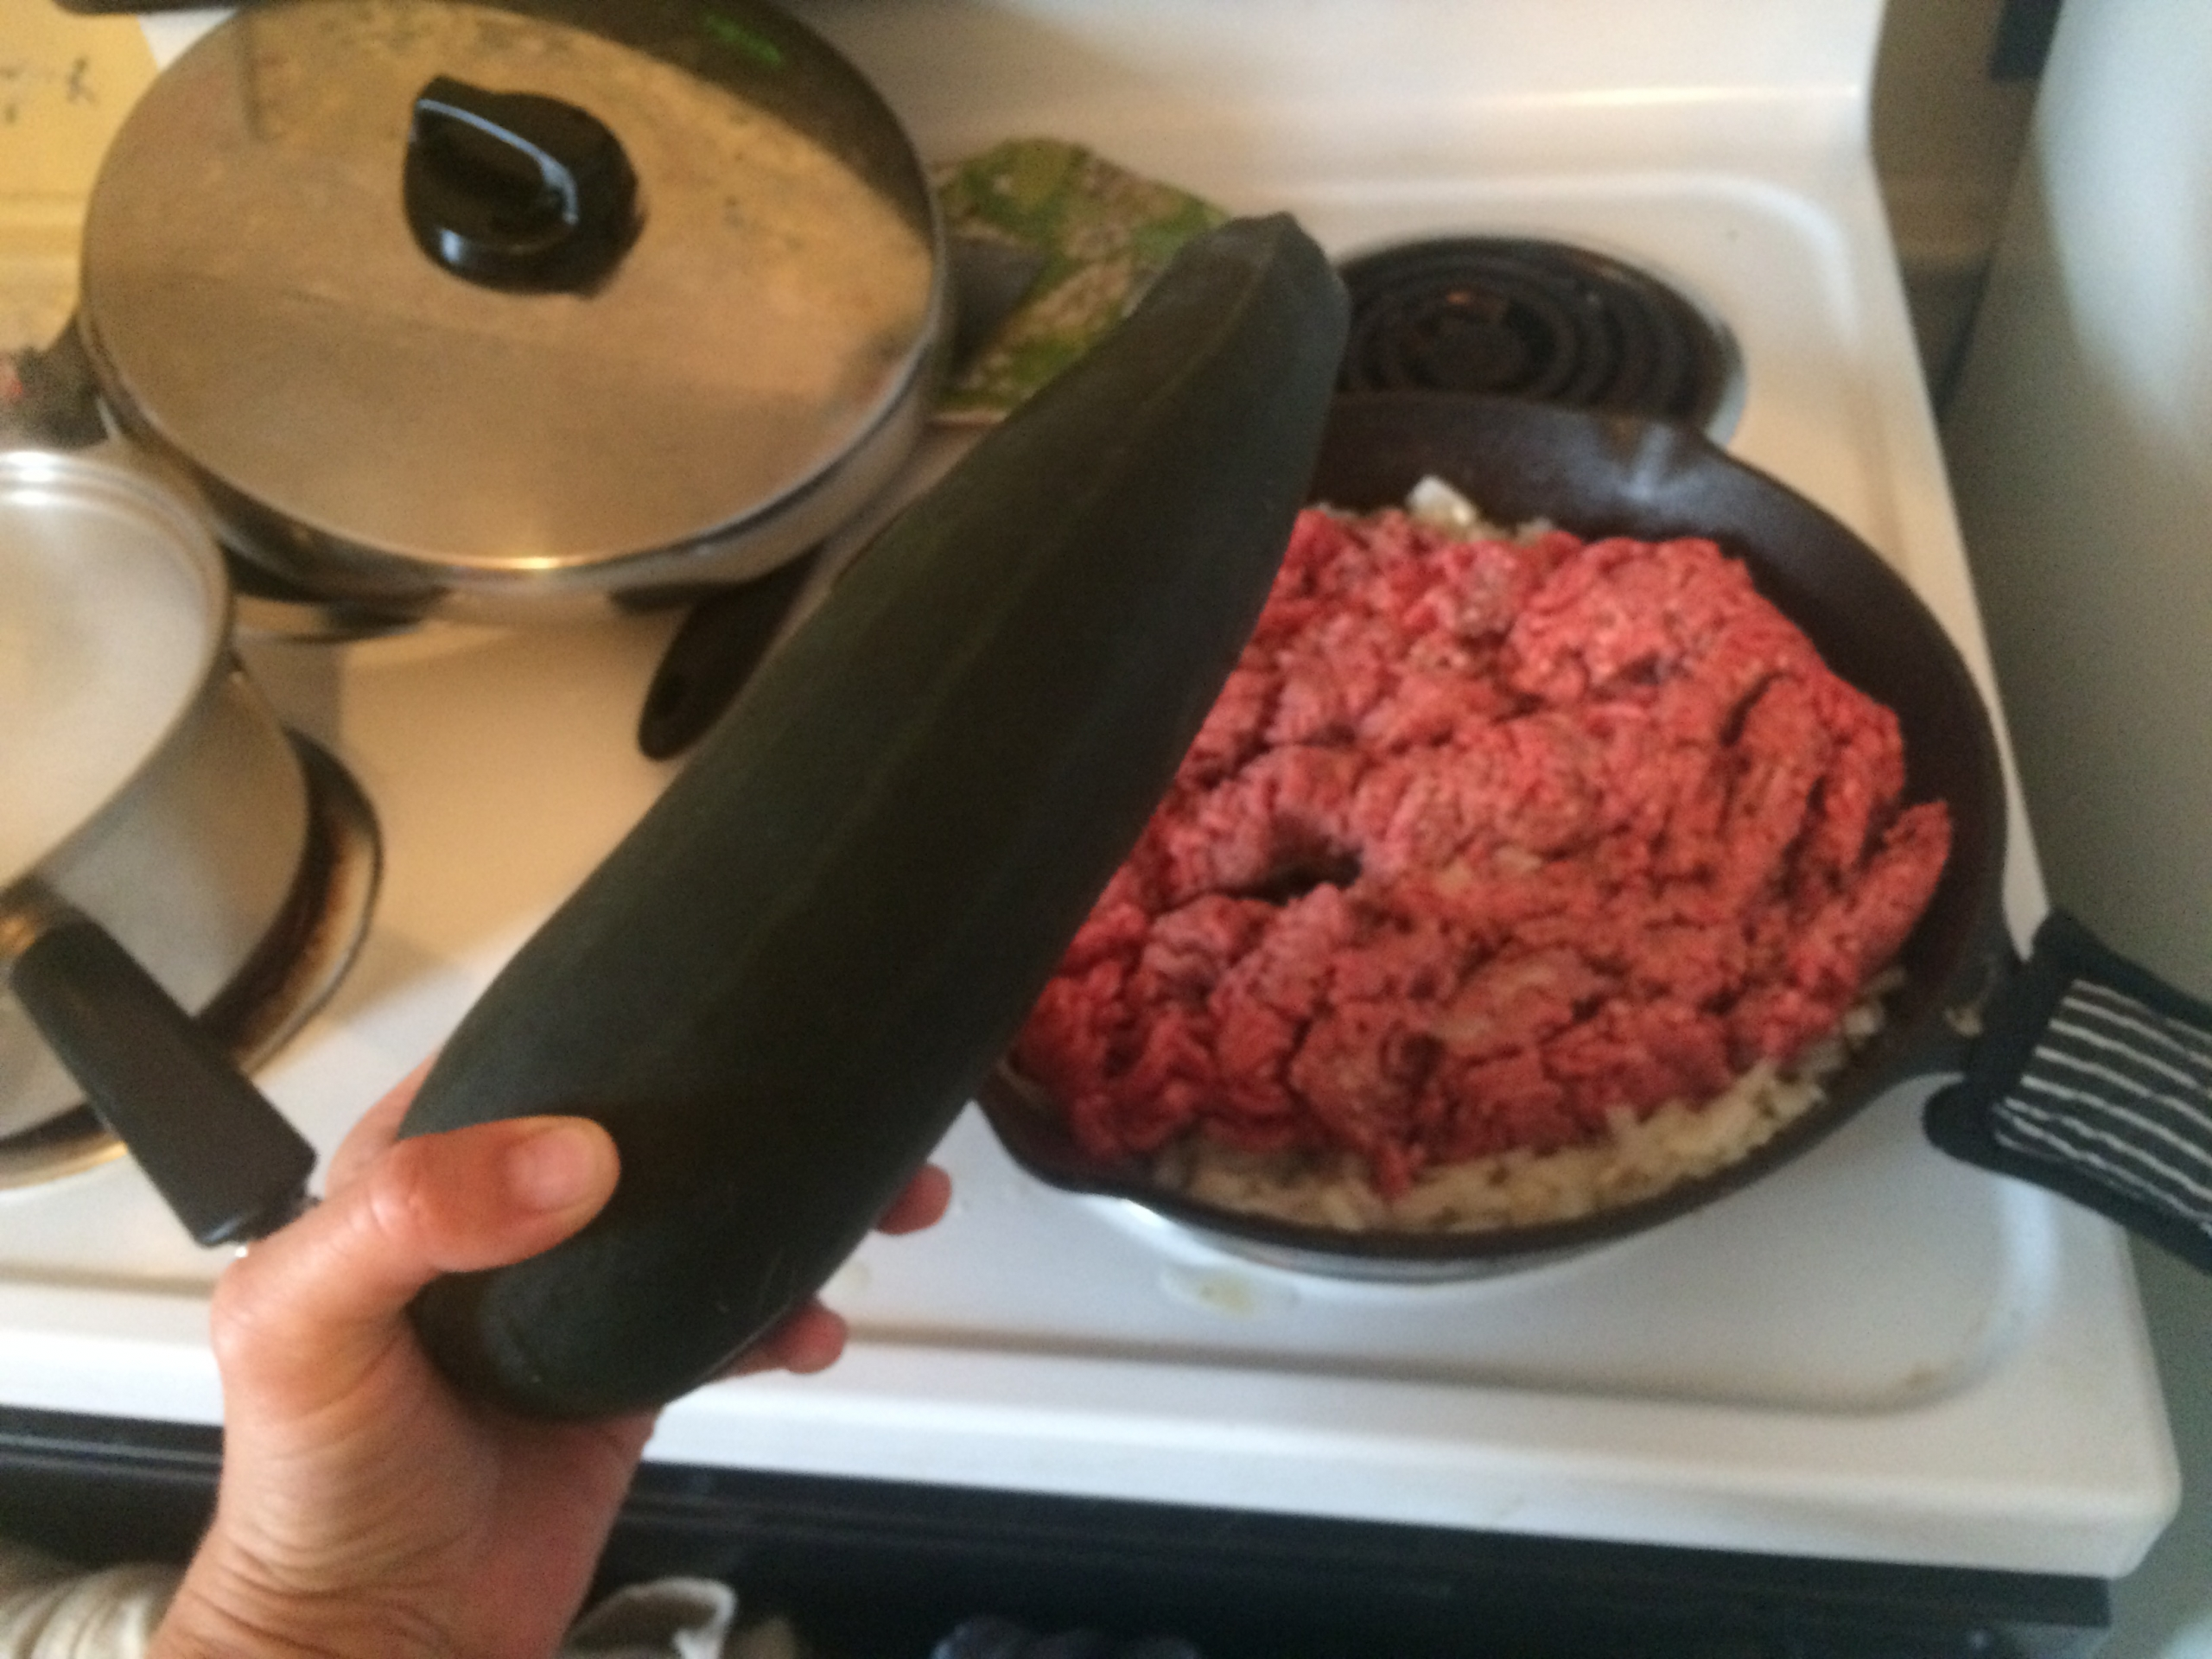 Browning the Beef